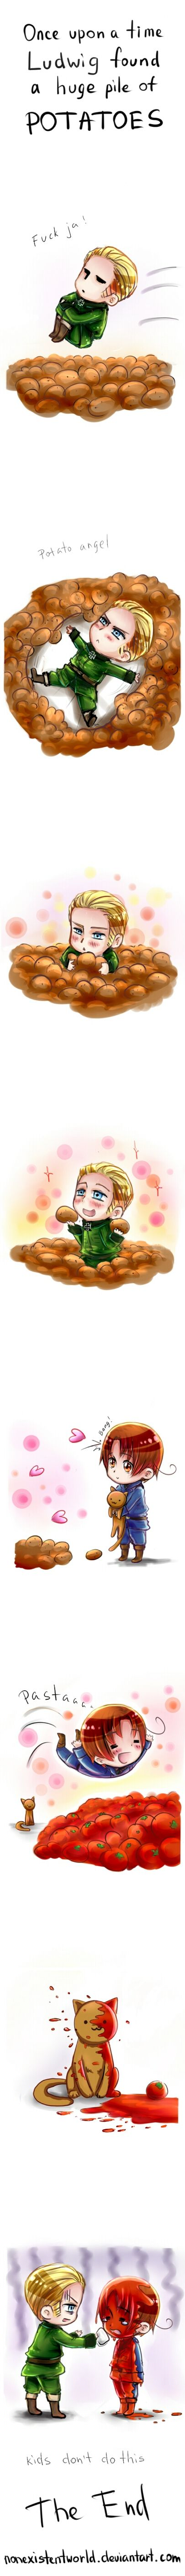 APH : Feli goes to heaven by NonexistentWorld.deviantart.com on @deviantART